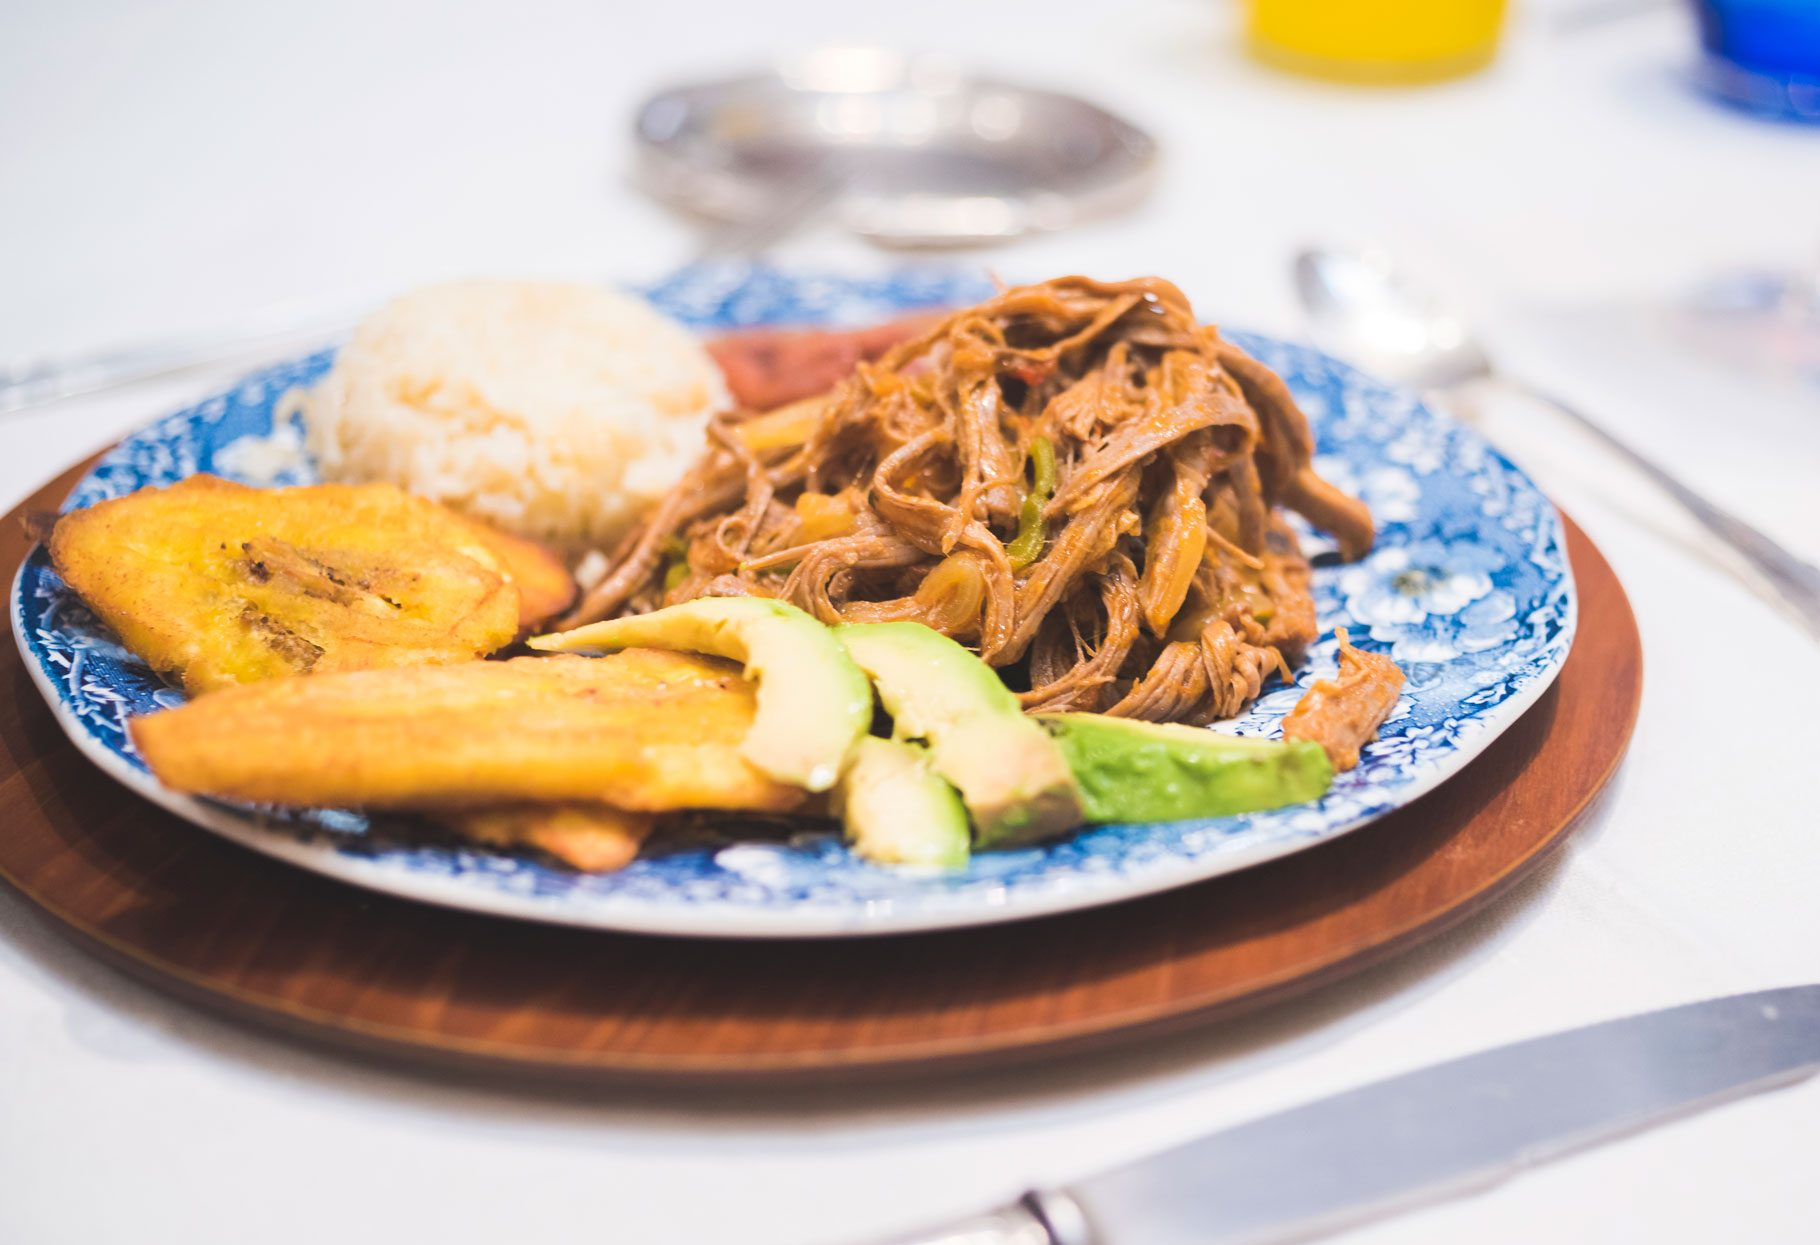 A full plate of ropa vieja, a popular Caribbean dish.